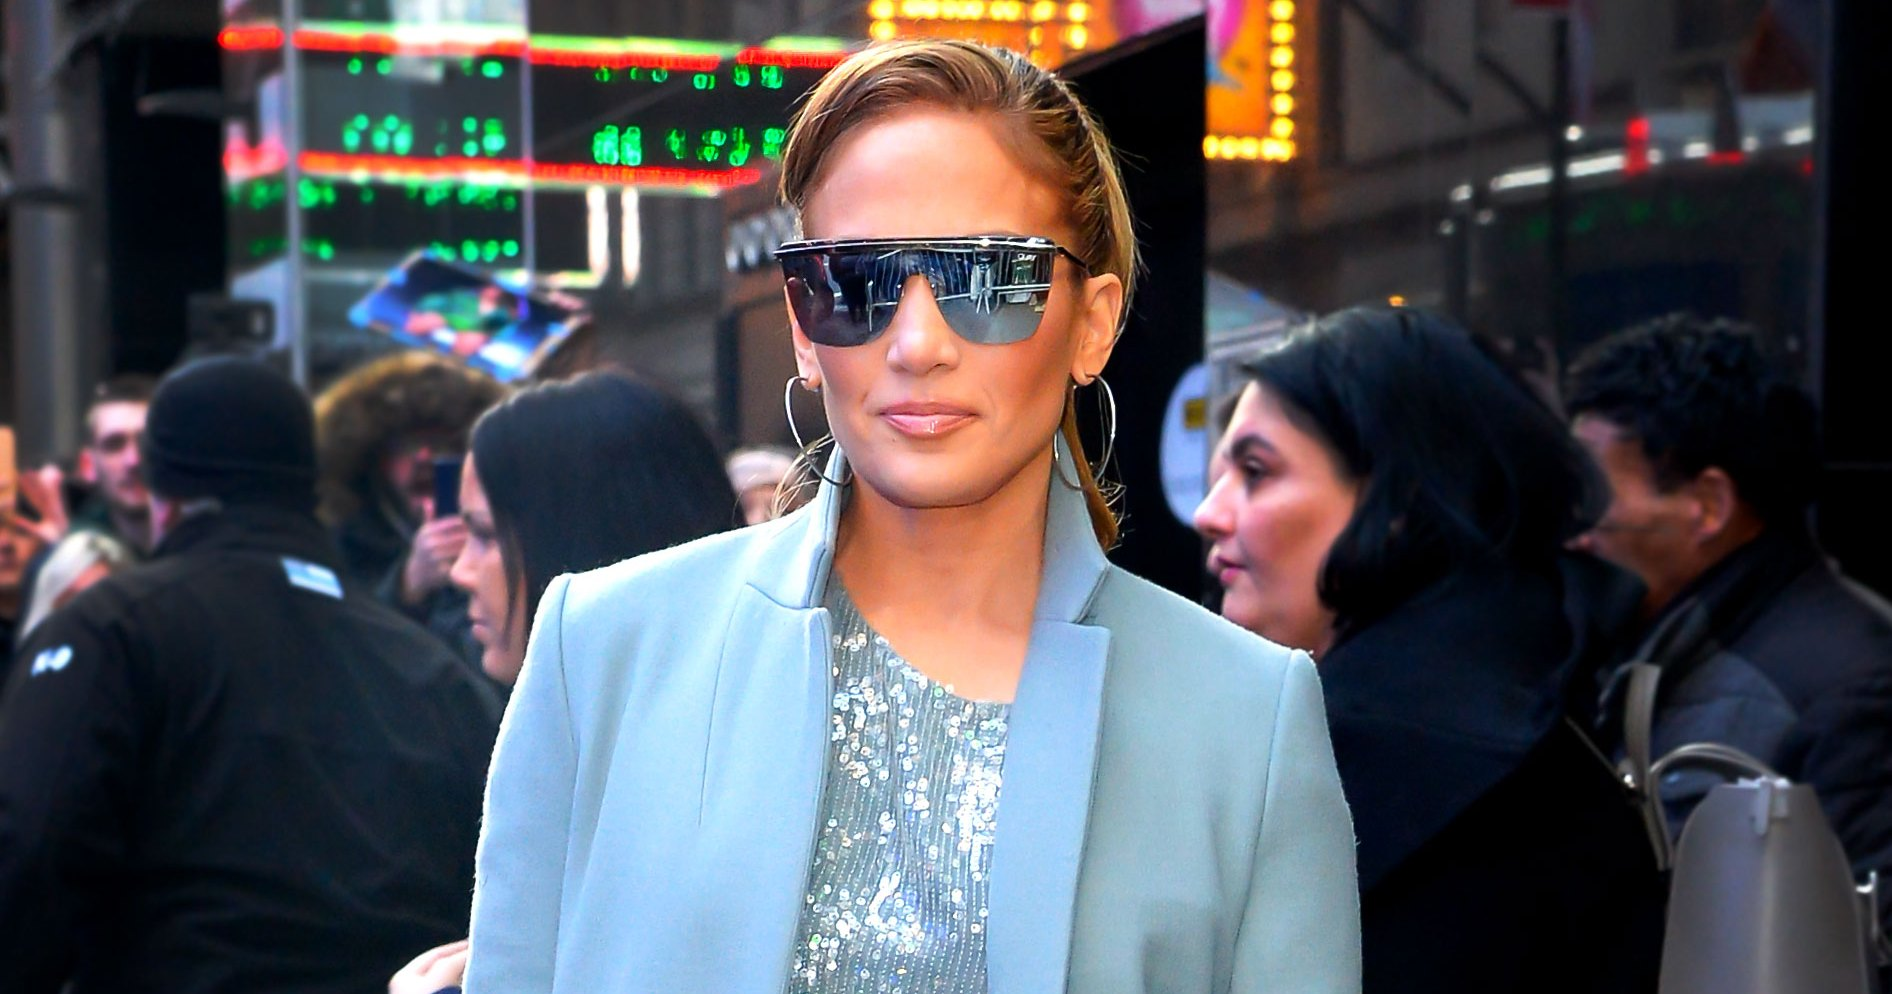 See All of Jennifer Lopez's Glam Fashion Looks From Her 'Second Act' Movie Press Tour